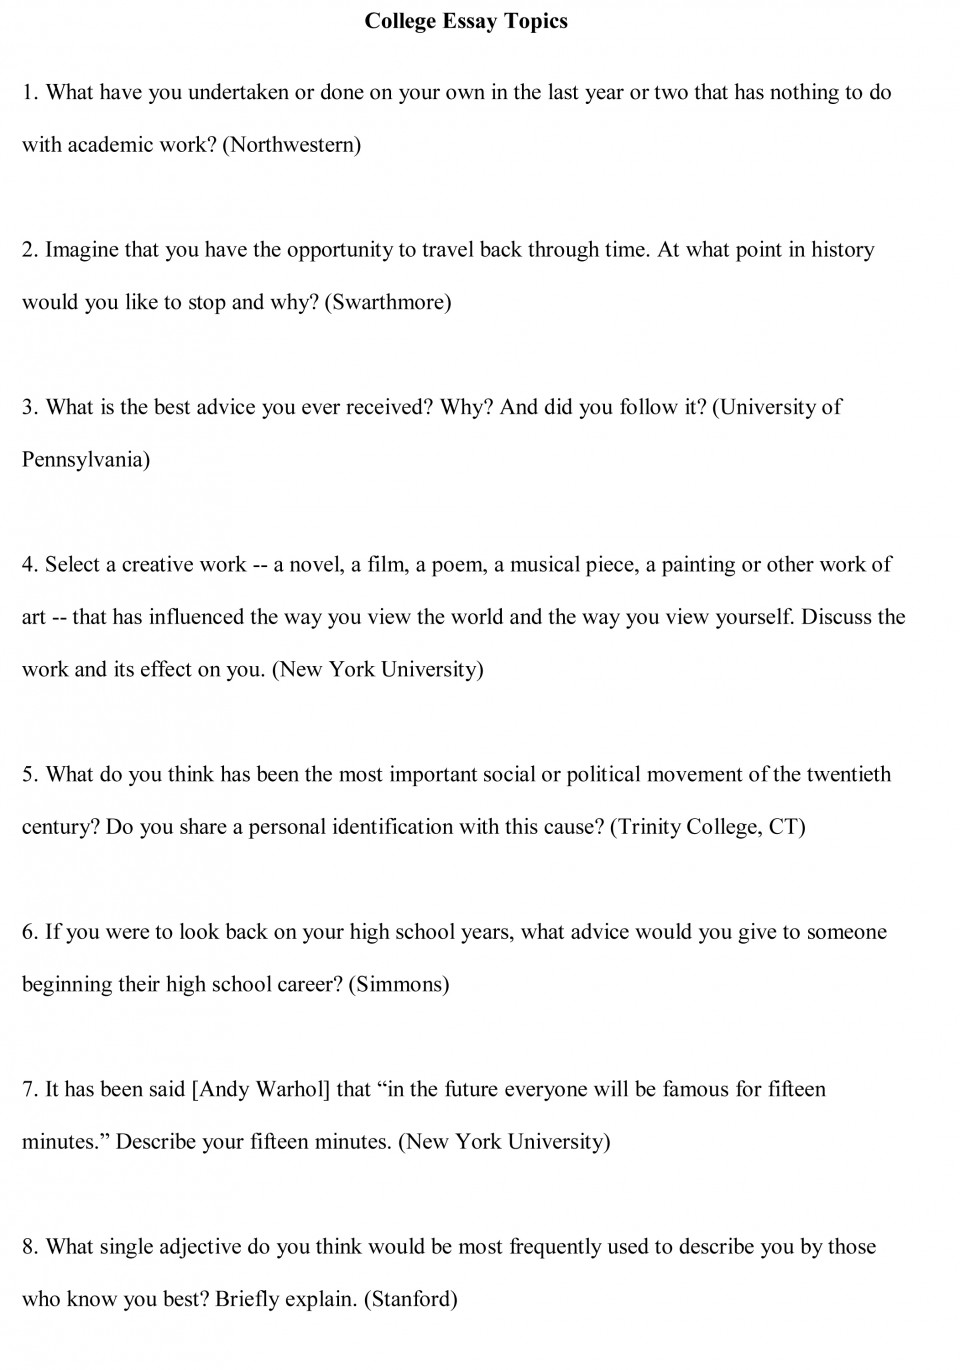 007 College Essay Topics Free Sample1 Good Best For Middle School Argumentative The Great Gatsby Persuasive 8th Graders 960